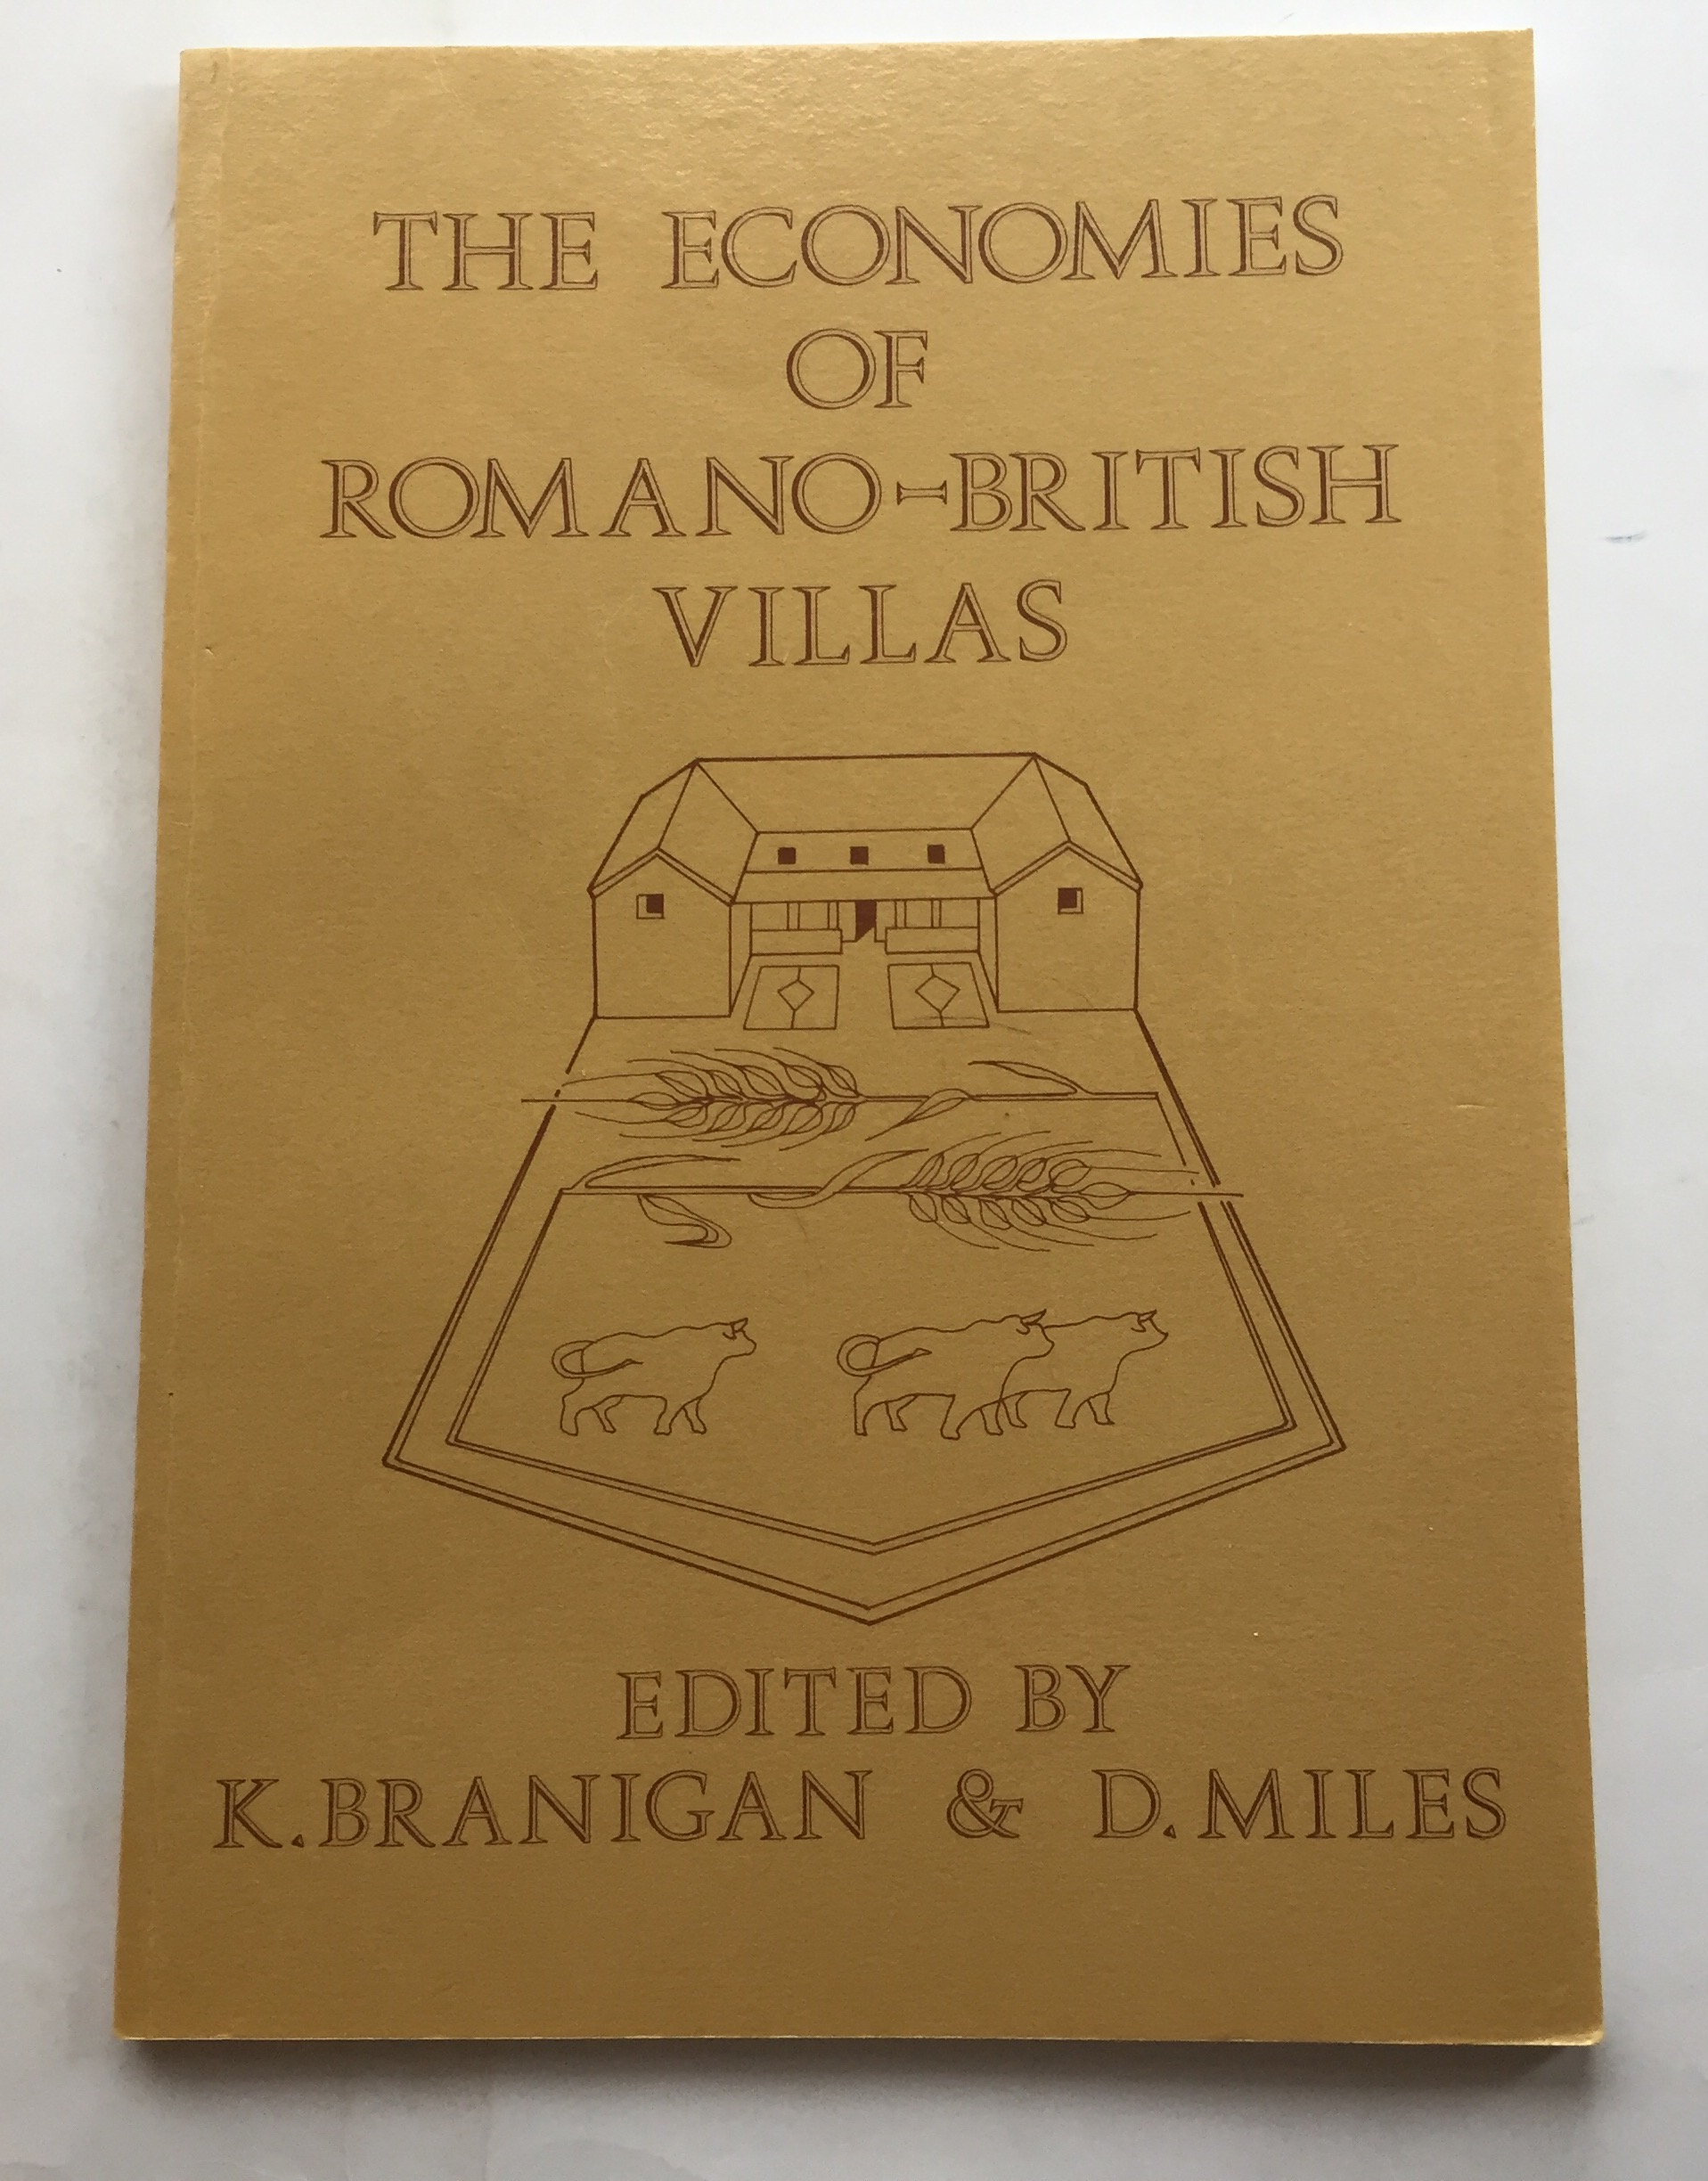 The Economies of Romano-British Villas :, Branigan, K. ;Miles, D. (eds)